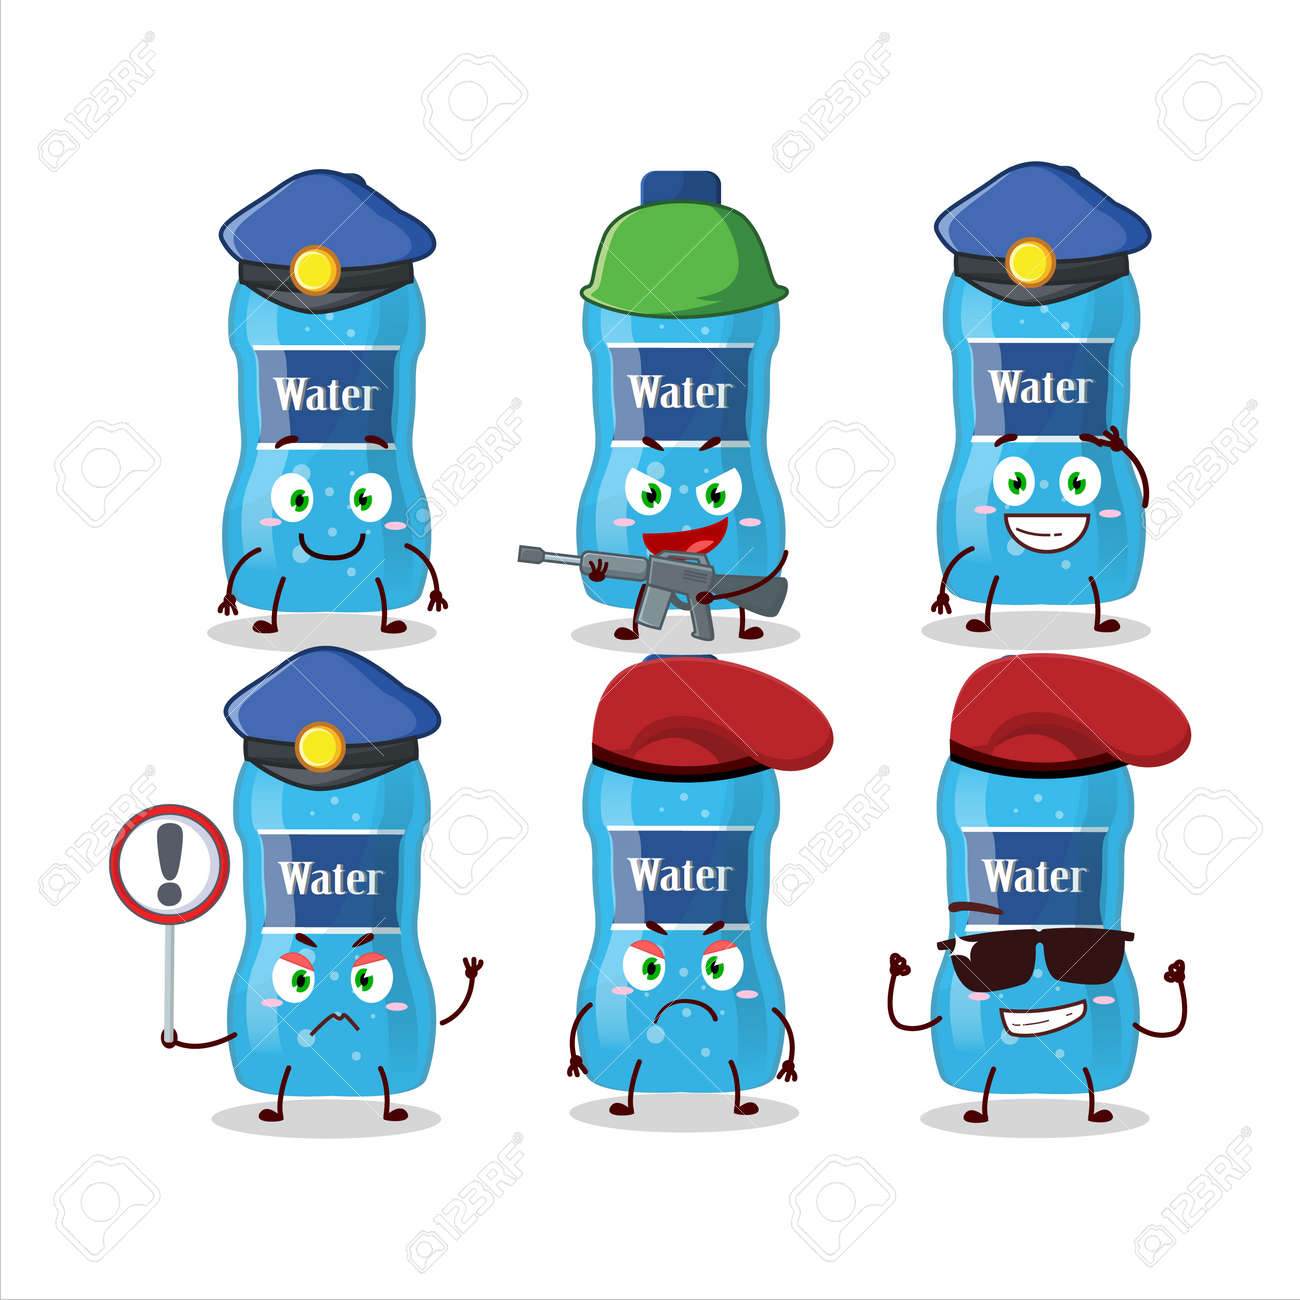 A dedicated Police officer of water bottle mascot design style - 172515411